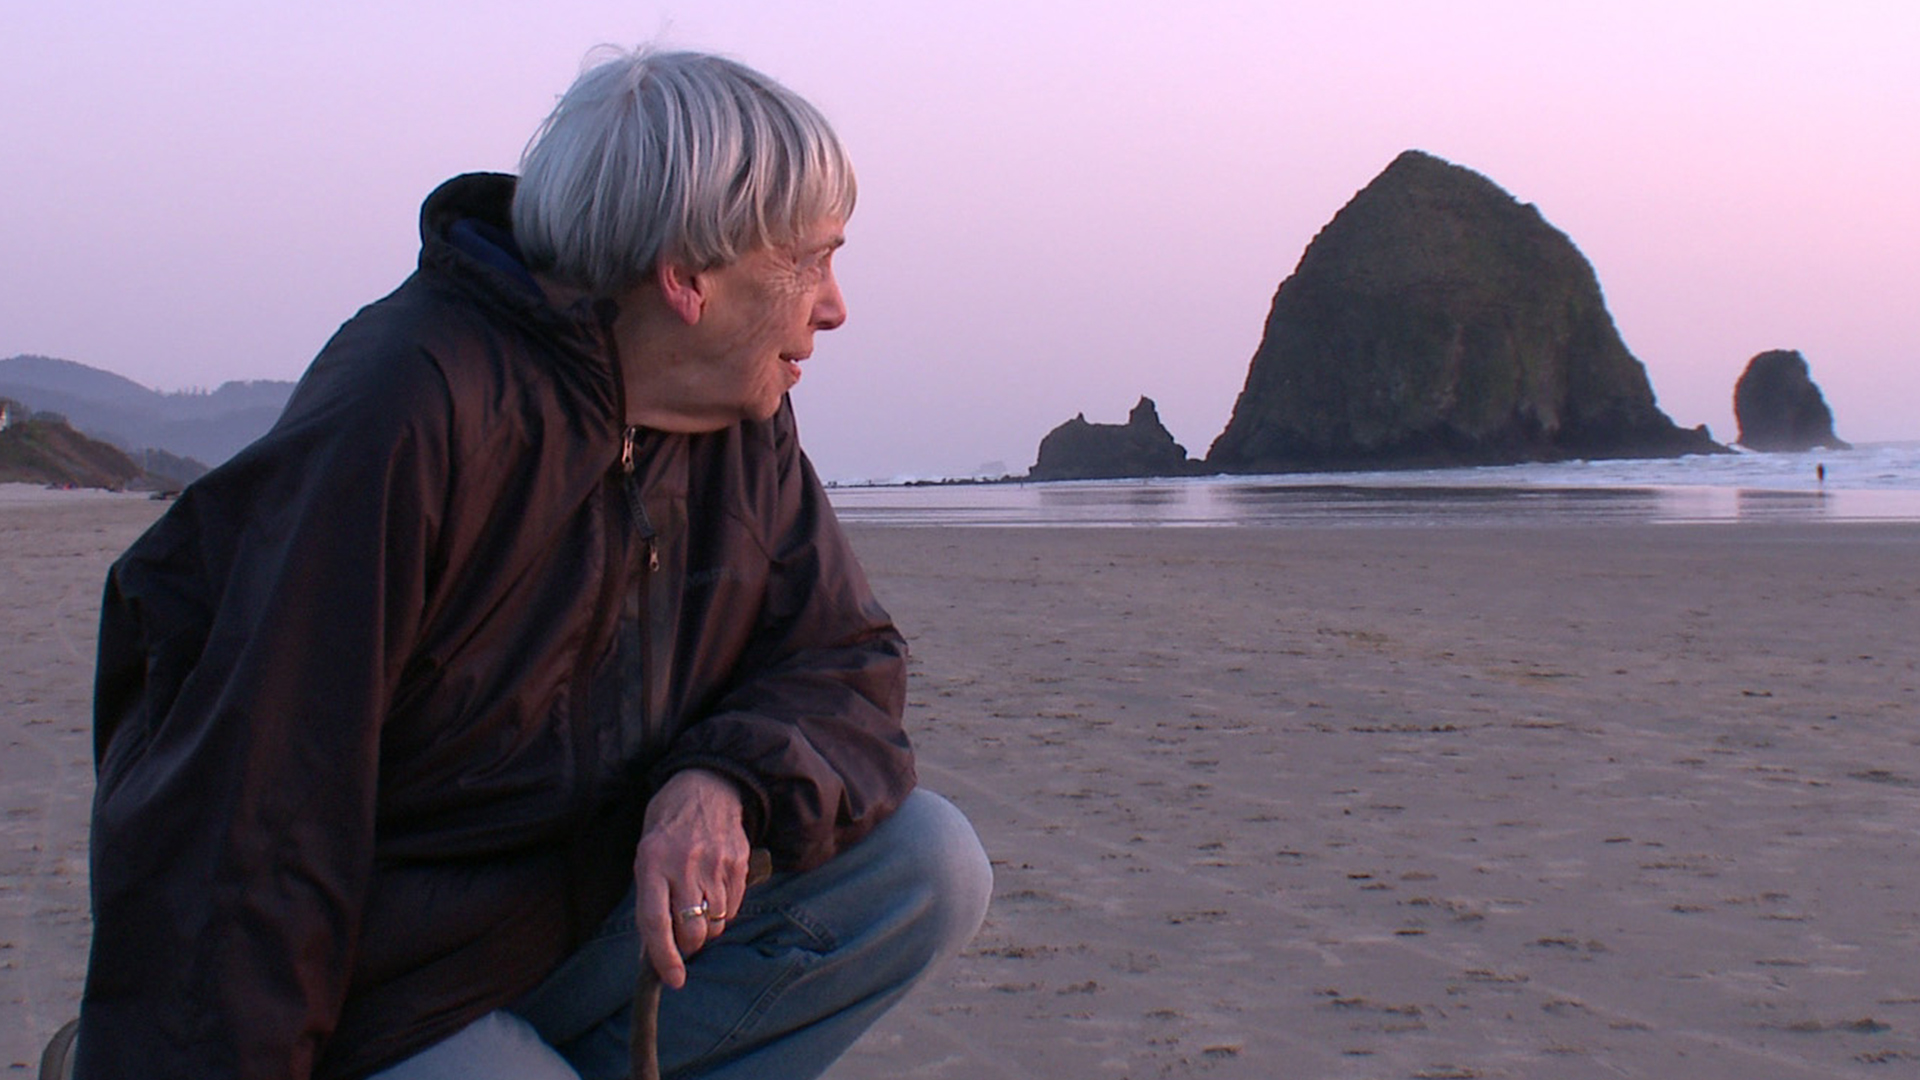 Still from the Worlds Of Ursula K. Le Guin